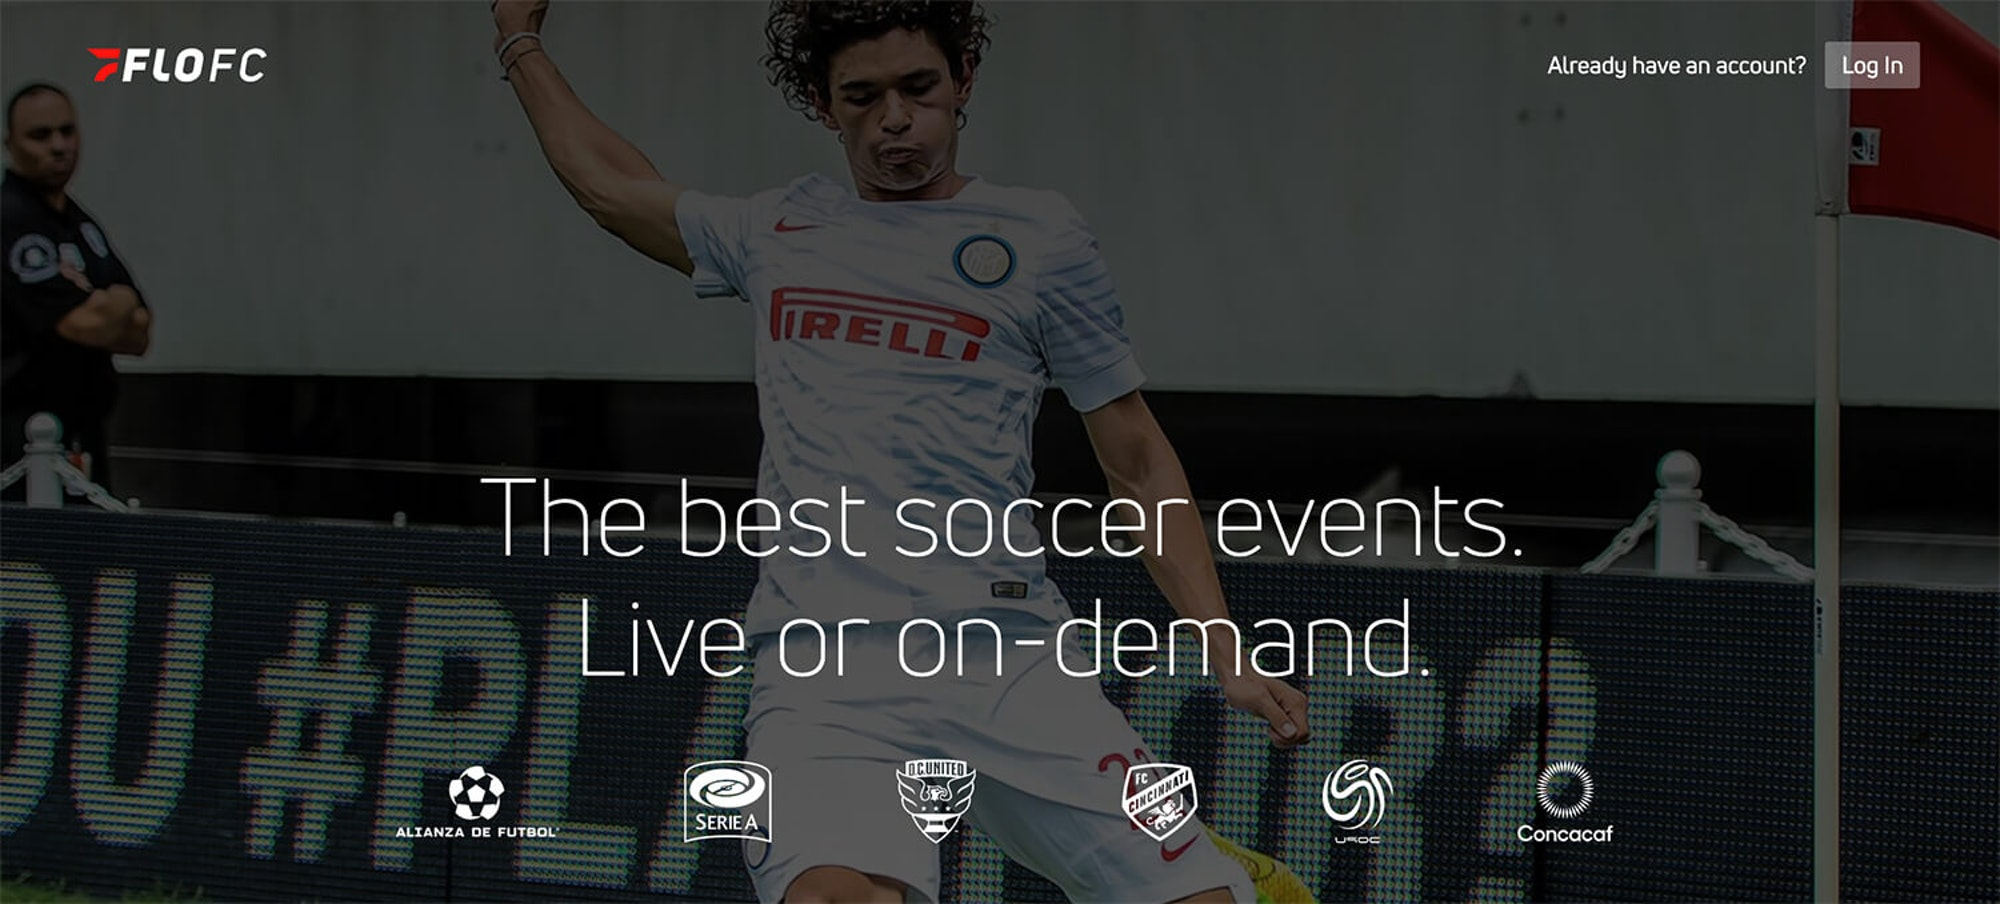 2019-20 concacaf nations league mexico vs bermuda soccer live stream free flo fc